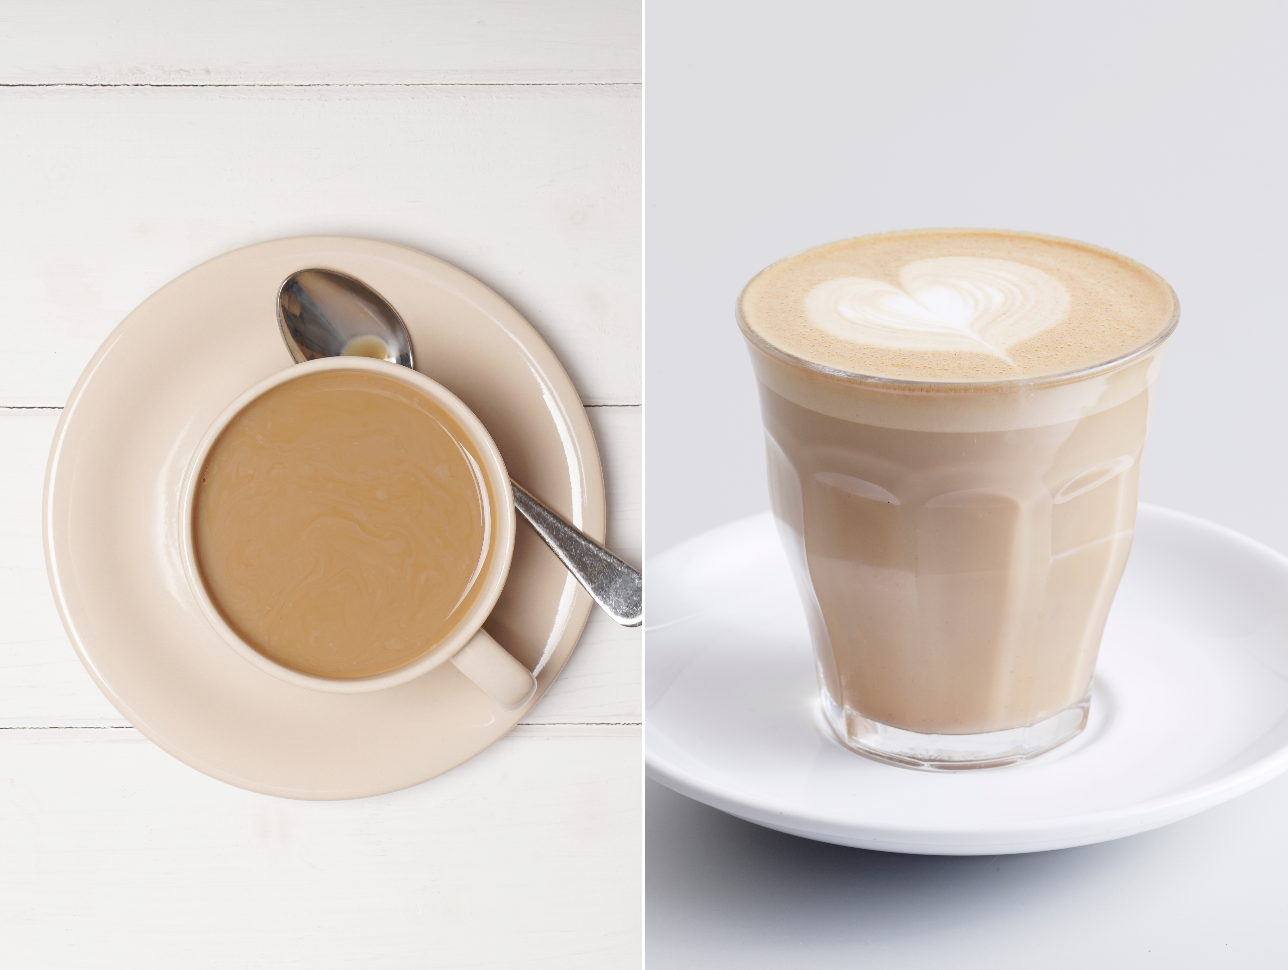 Café Au Lait vs. Latte: What's the Difference?